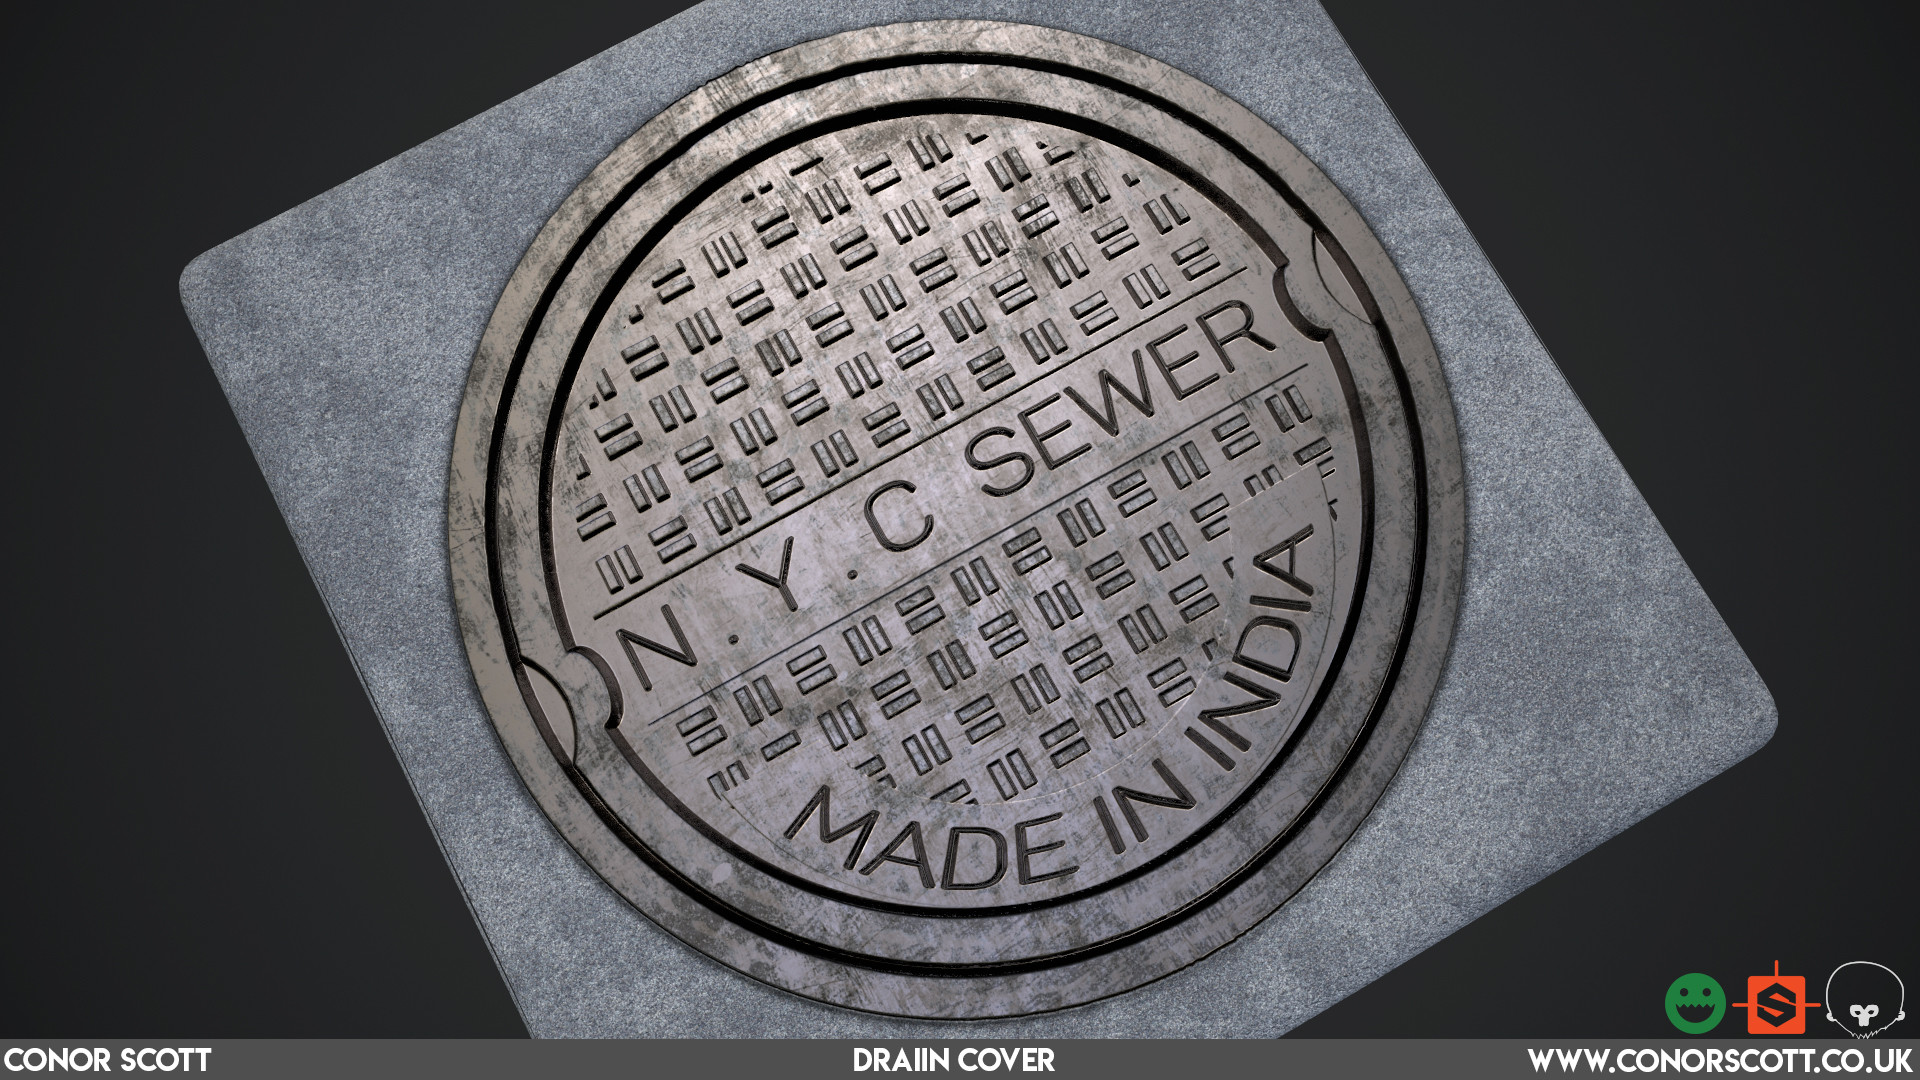 Conor scott draincover3